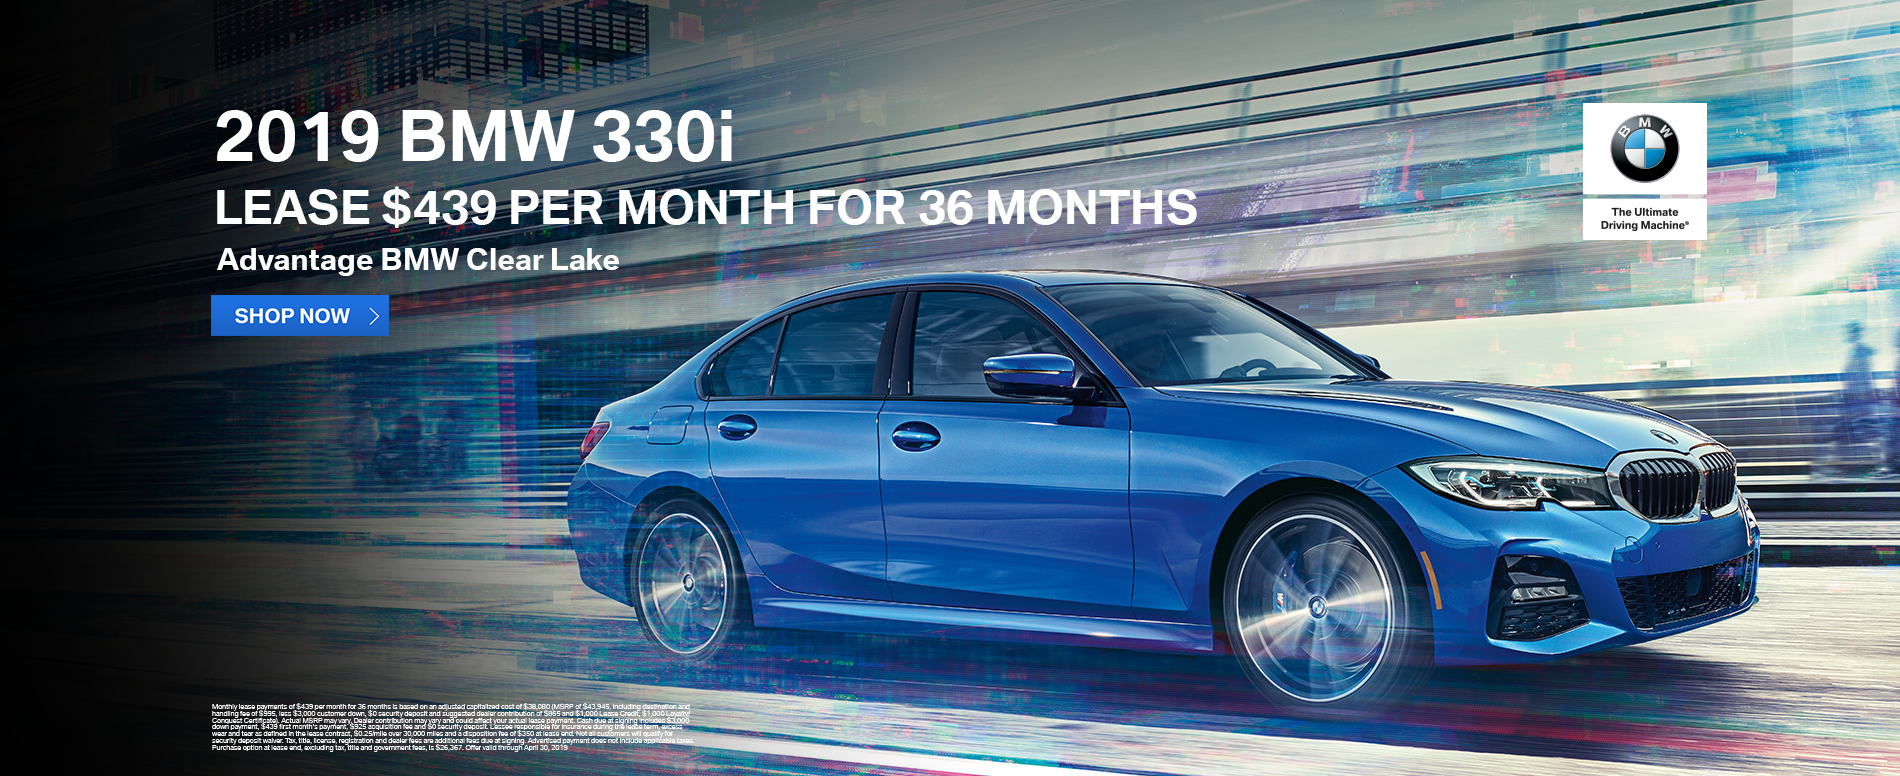 lease-bmw-330i-439-per-month-clear-lake